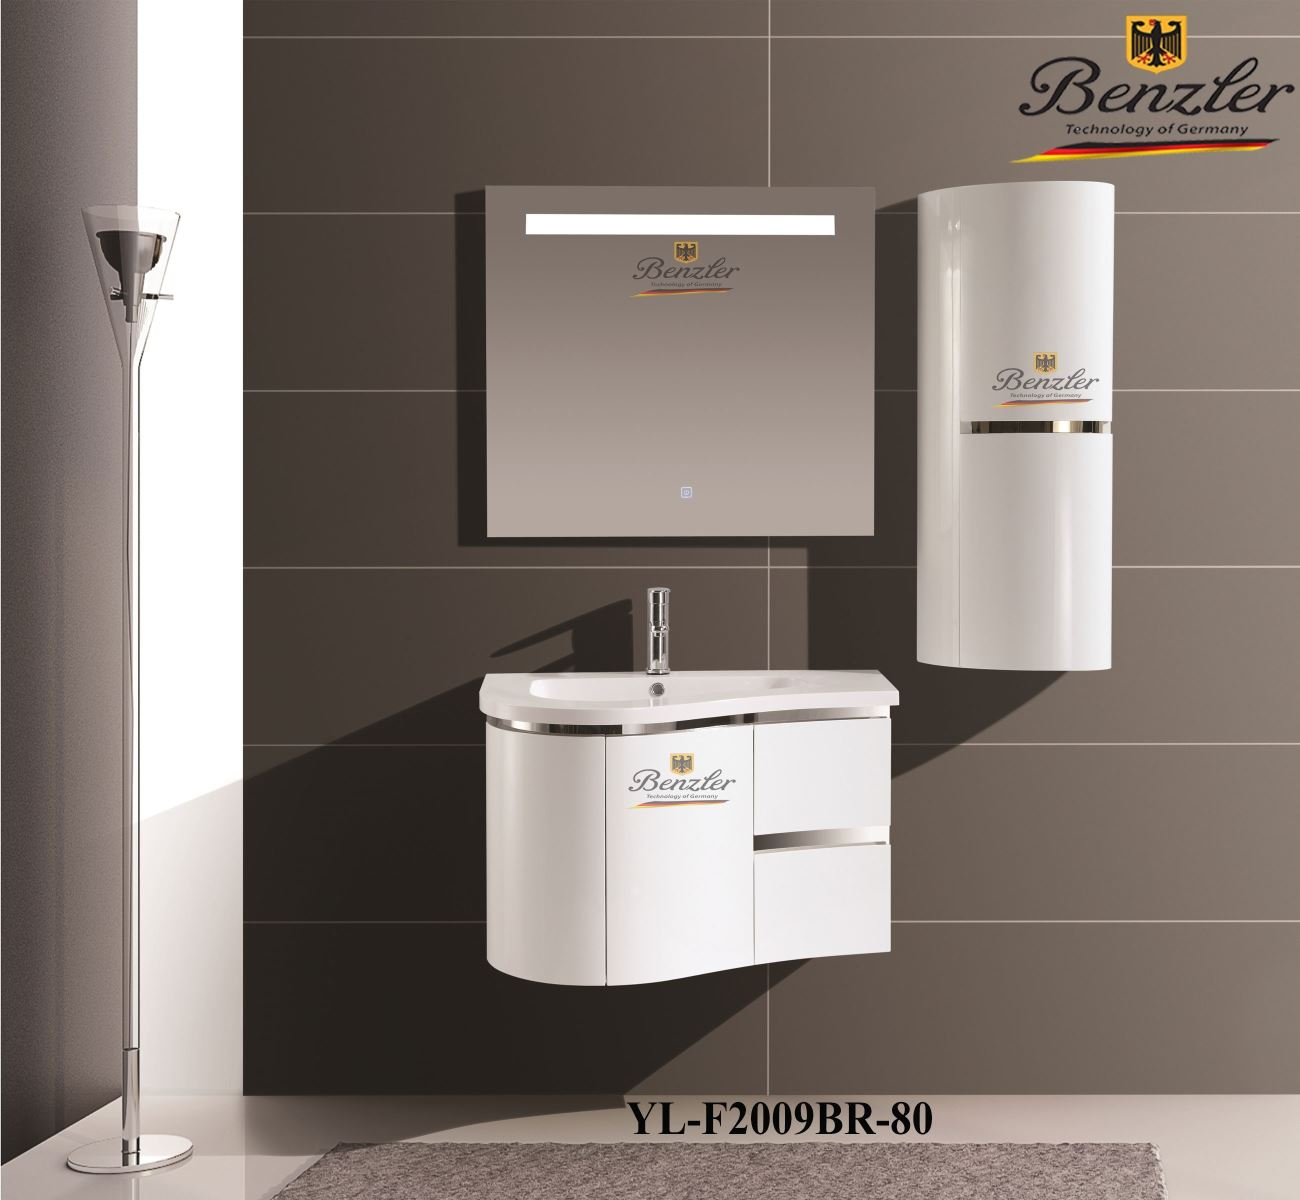 BỘ TỦ LAVABO BENZLER YL-F2009BR-80